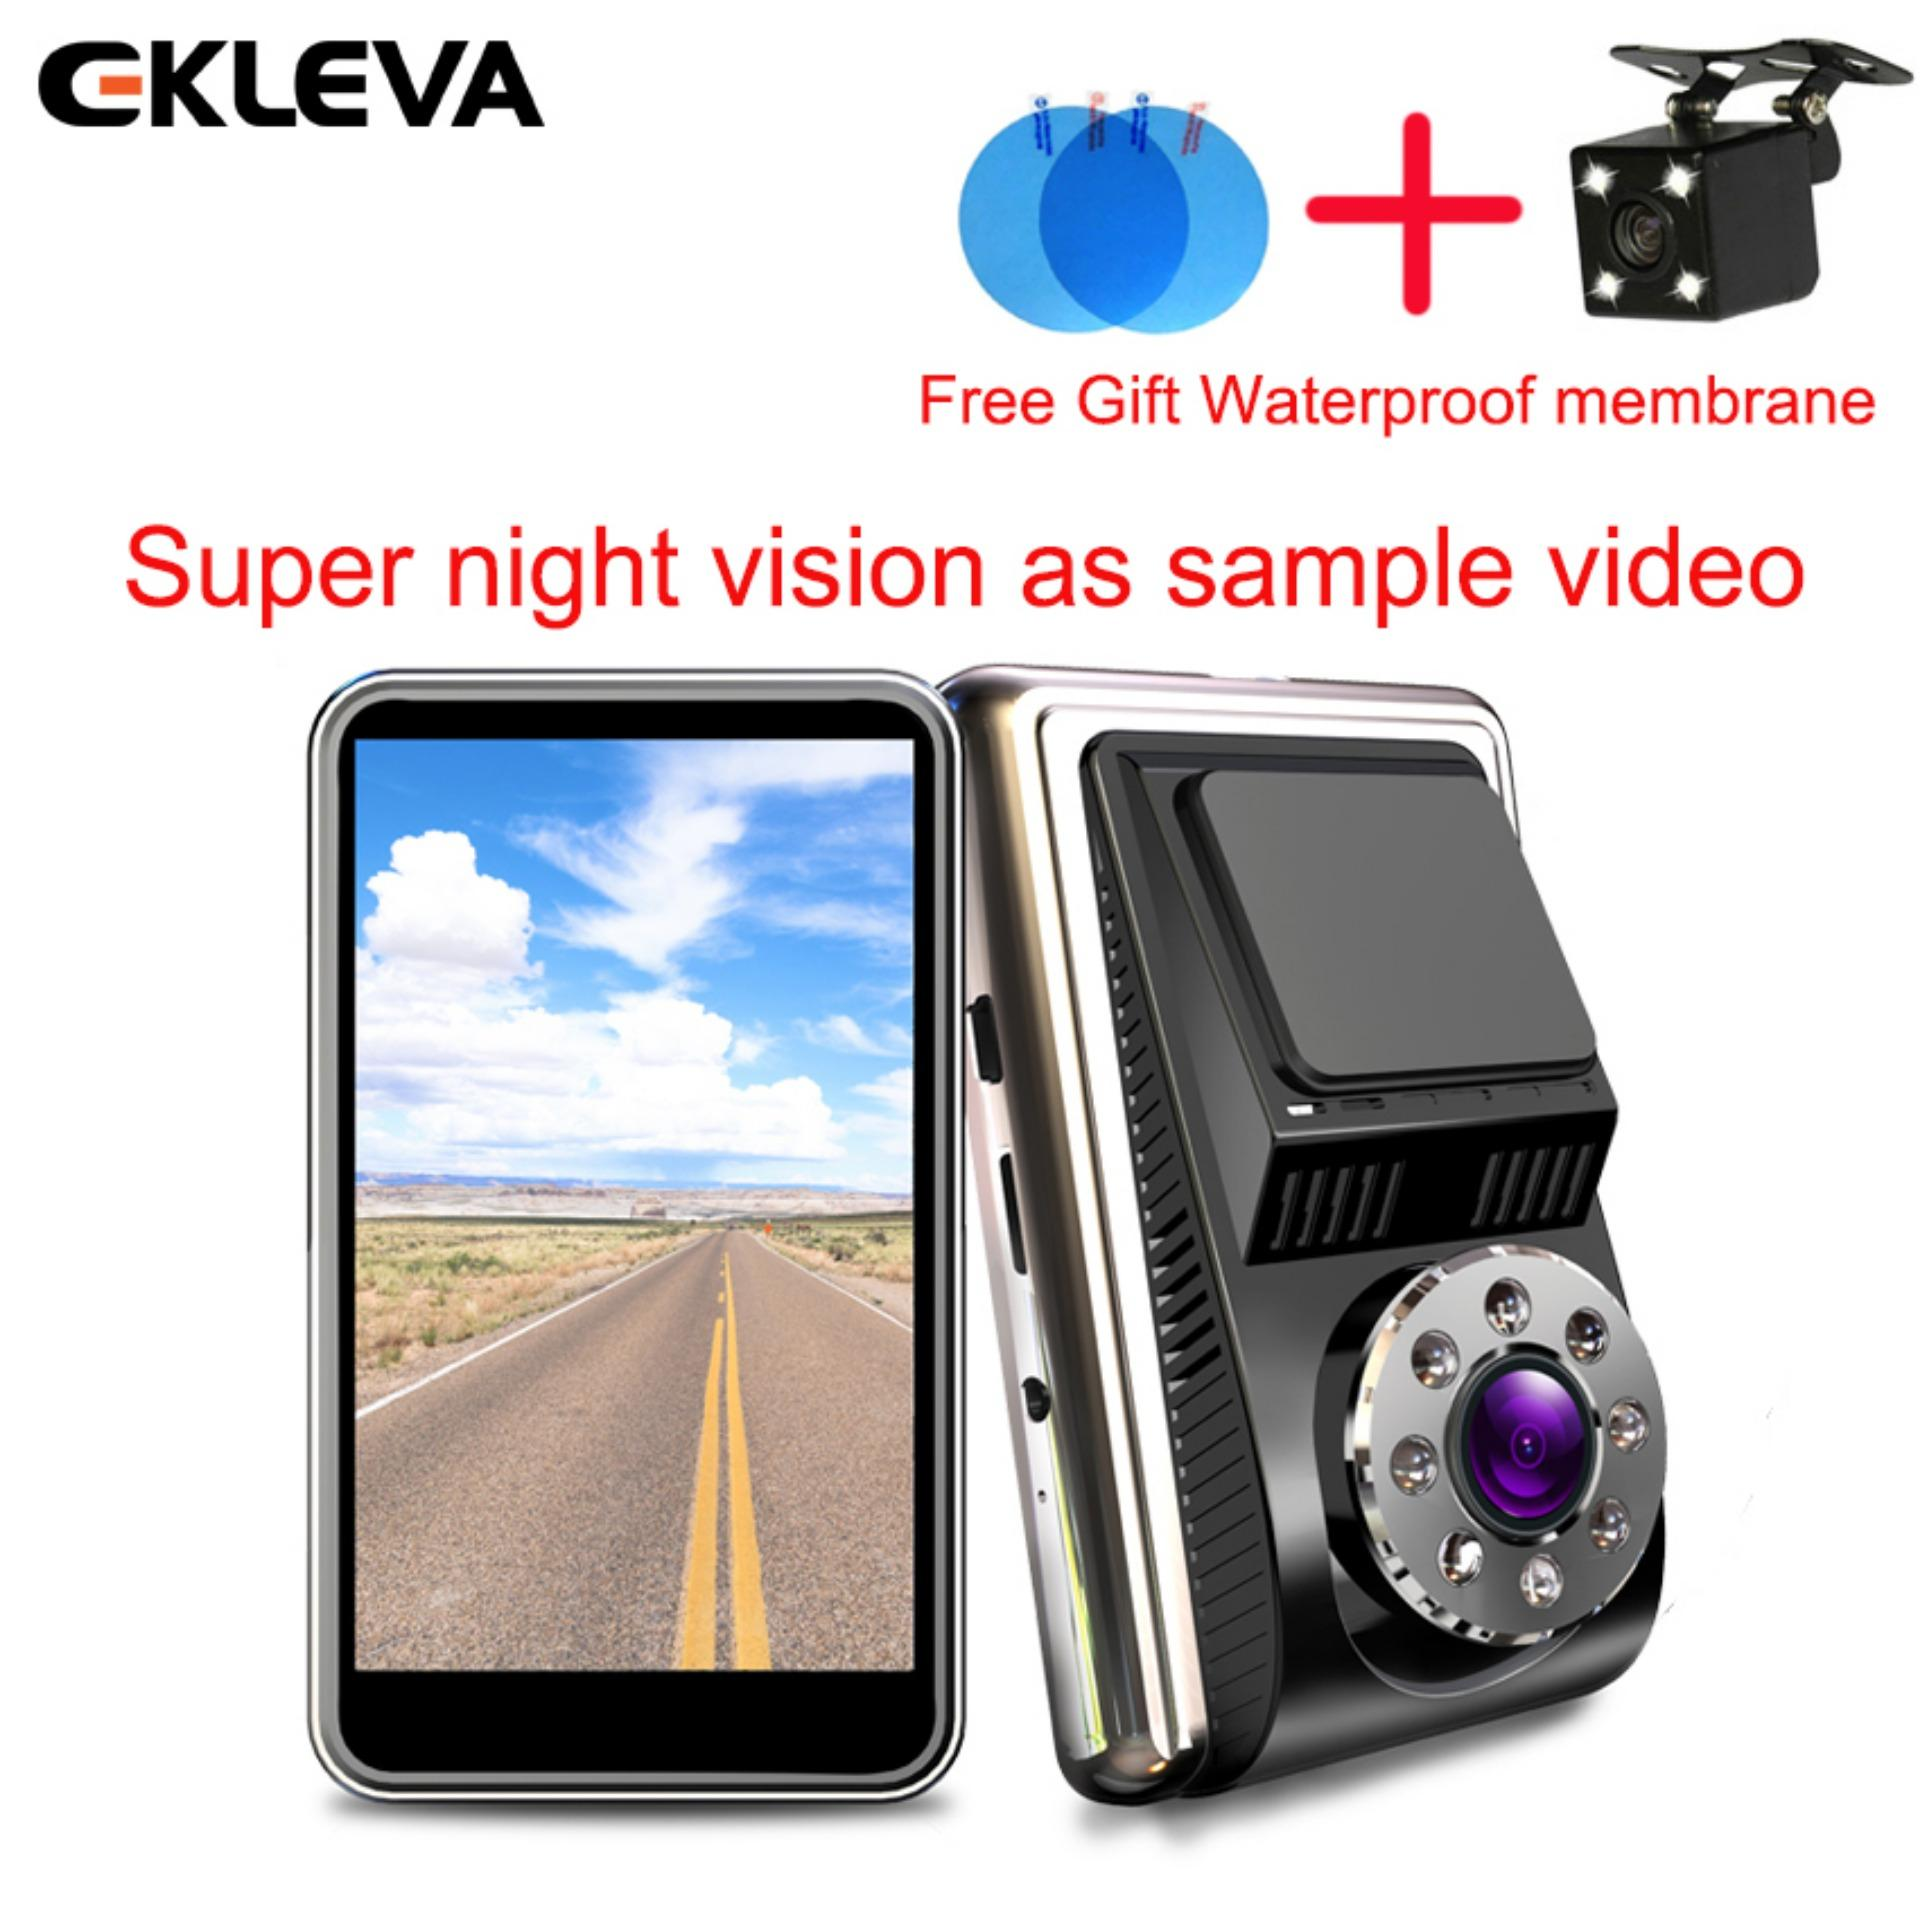 "EKLEVA Dual Dash Cam FHD 1080P Front And Rear Night Vision Car Camera, 4"" IPS Touch Screen 170 and 140 Dual Lens, Dashboard Cameras with G-Sensor, Parking Monitoring, Motion Detection, Loop Recording, Super Night Vision with Free Gift Waterproof Film"